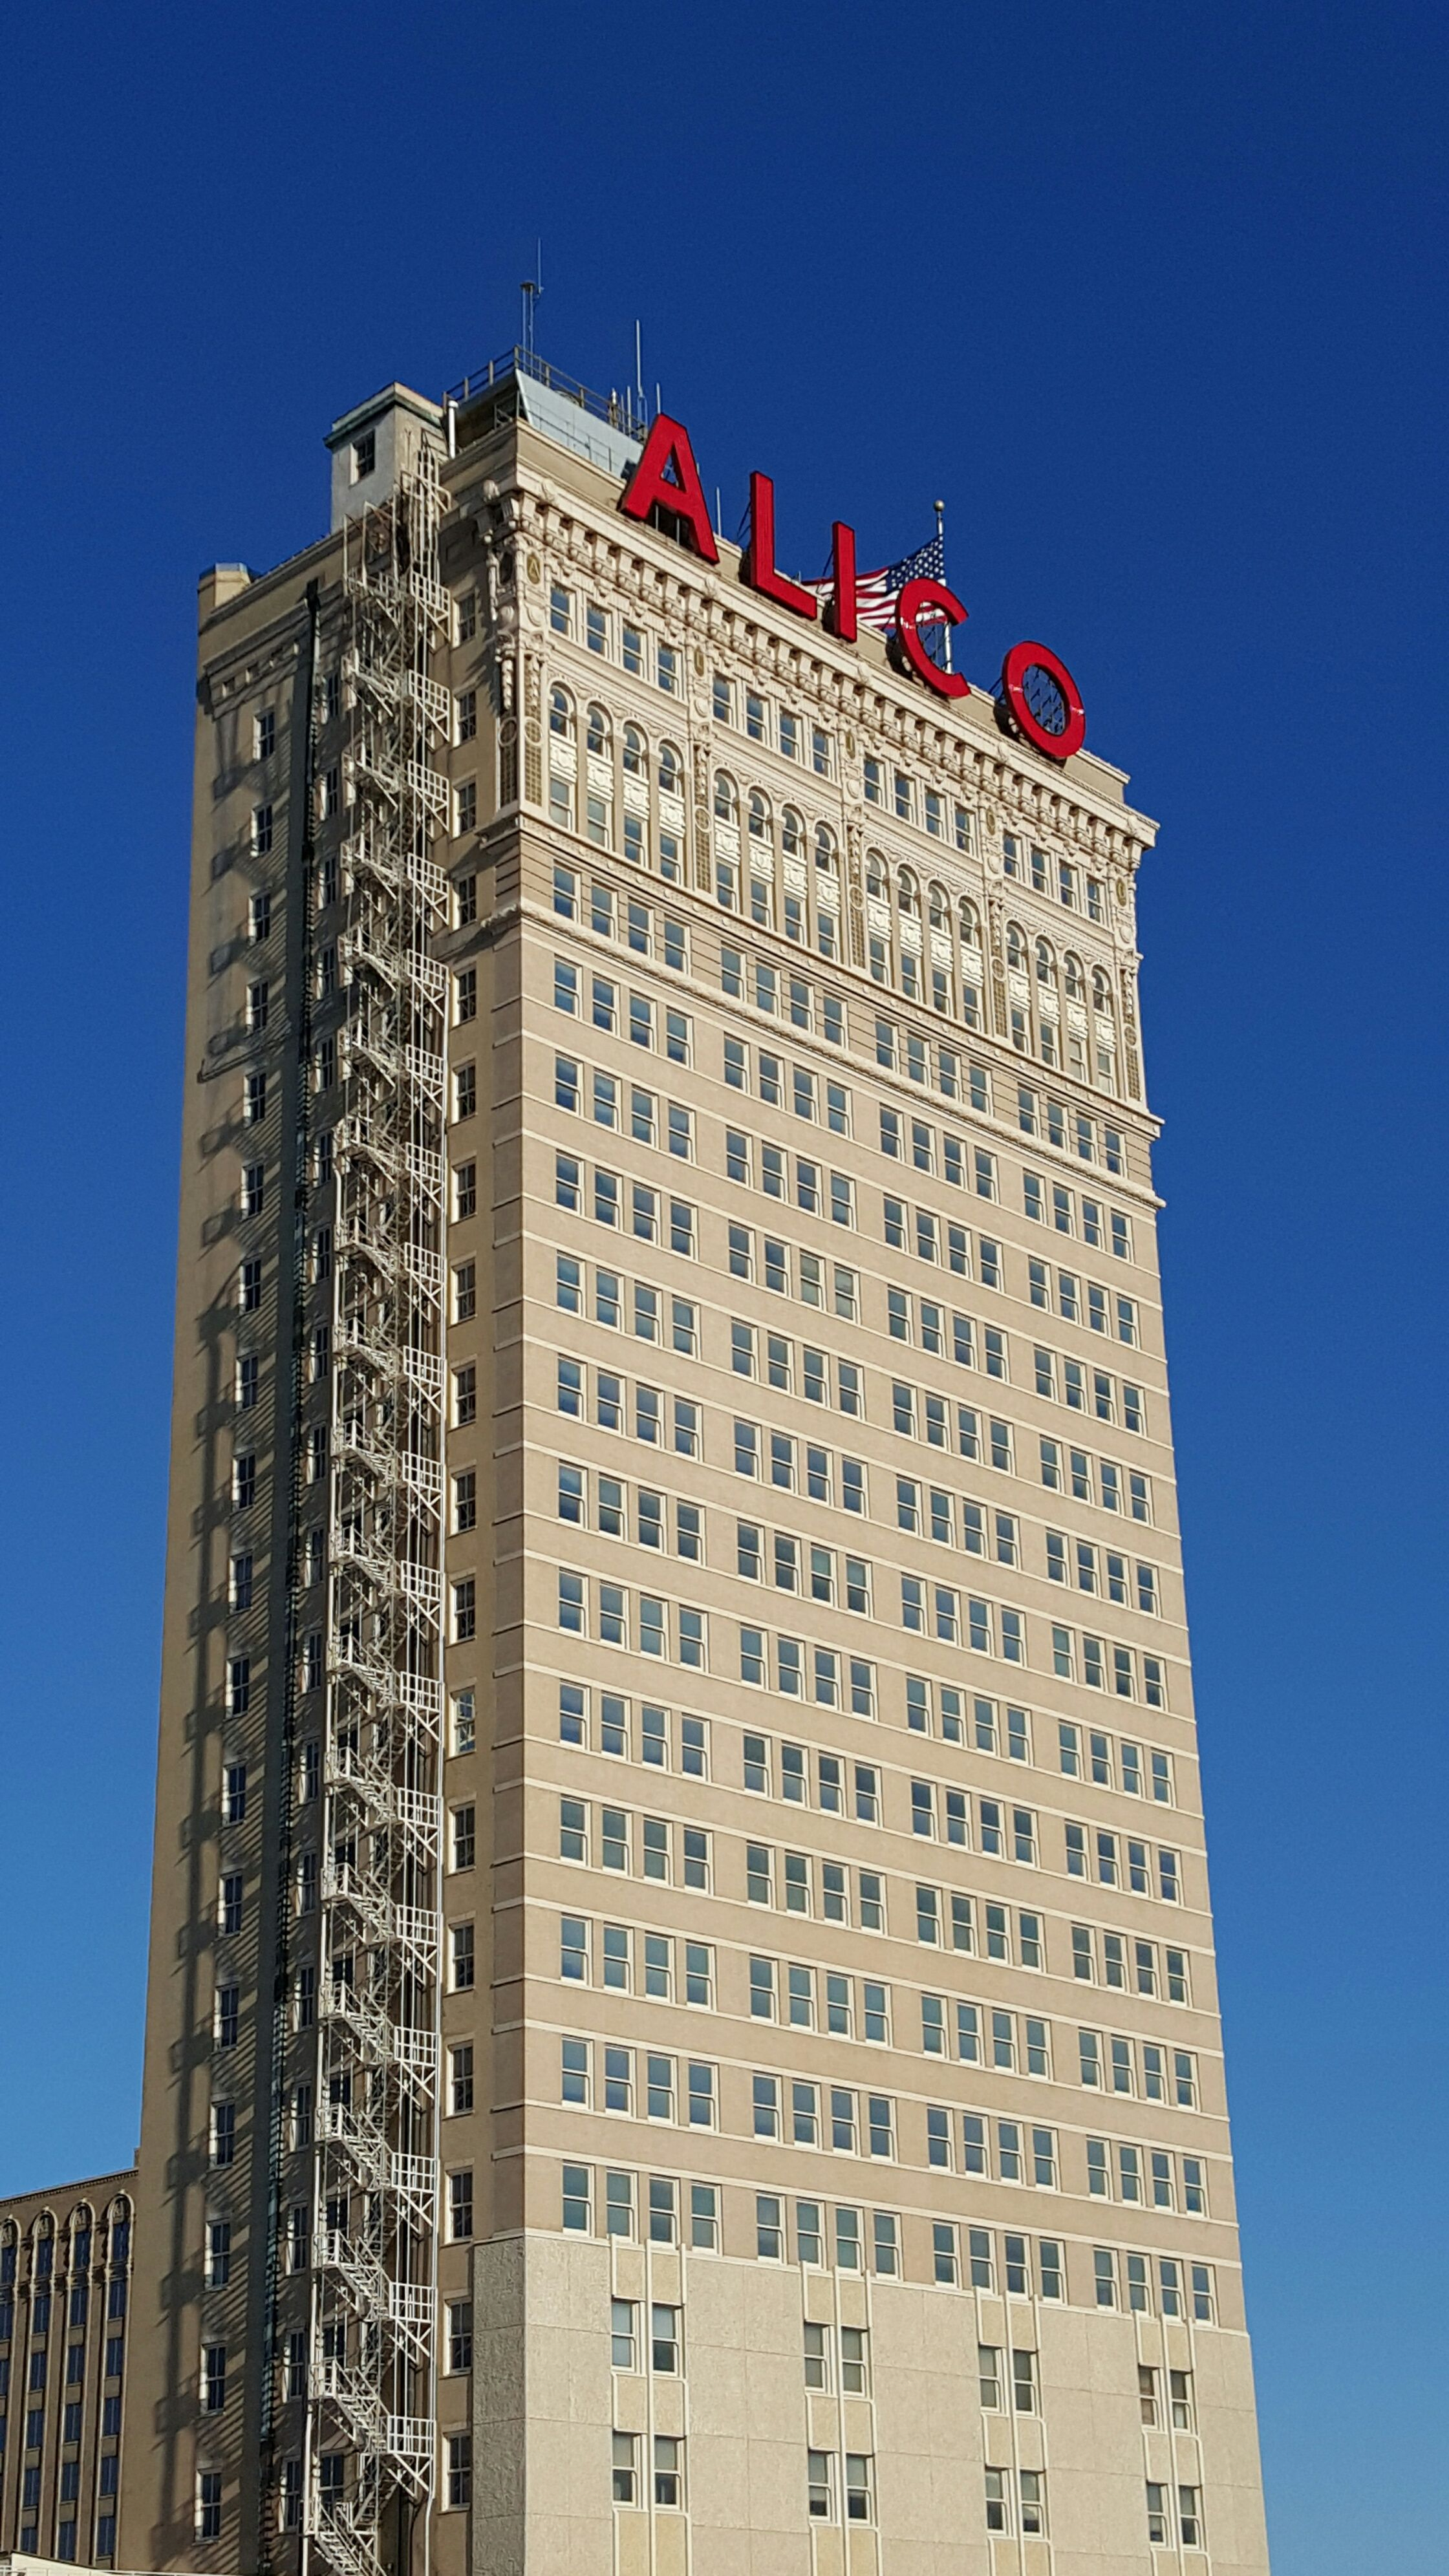 The Veritable Alico Building In Waco Texas Was Built In 1910 And